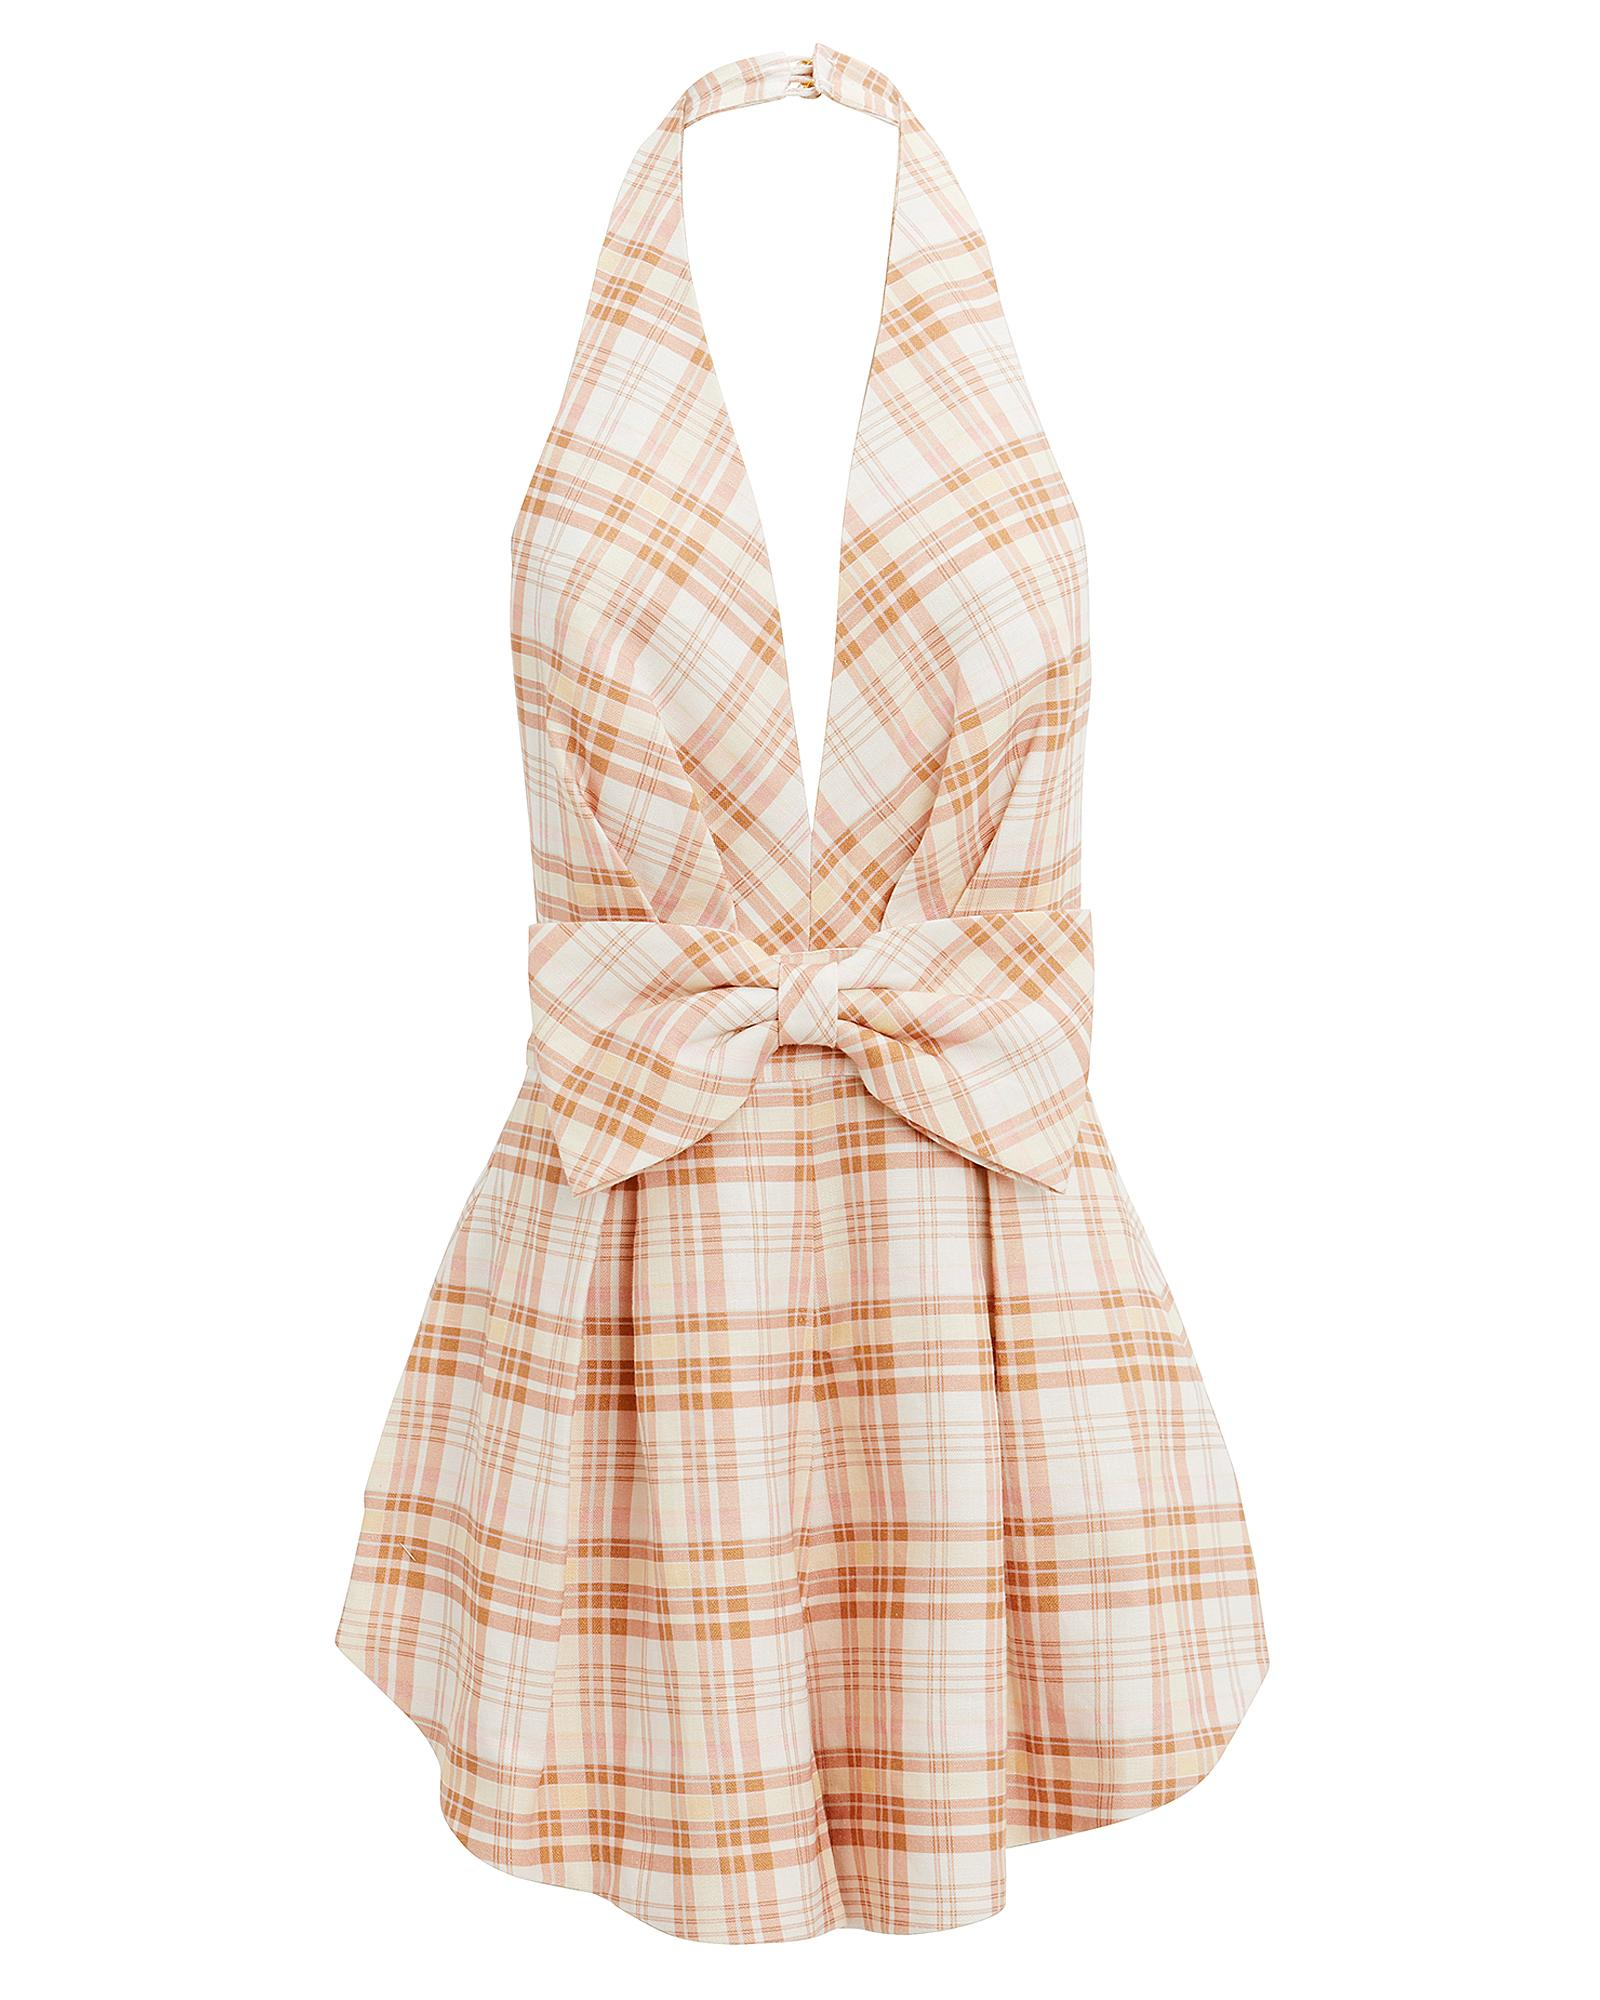 c54ee5940be Lyst - Zimmermann Corsage Plaid Playsuit in Natural